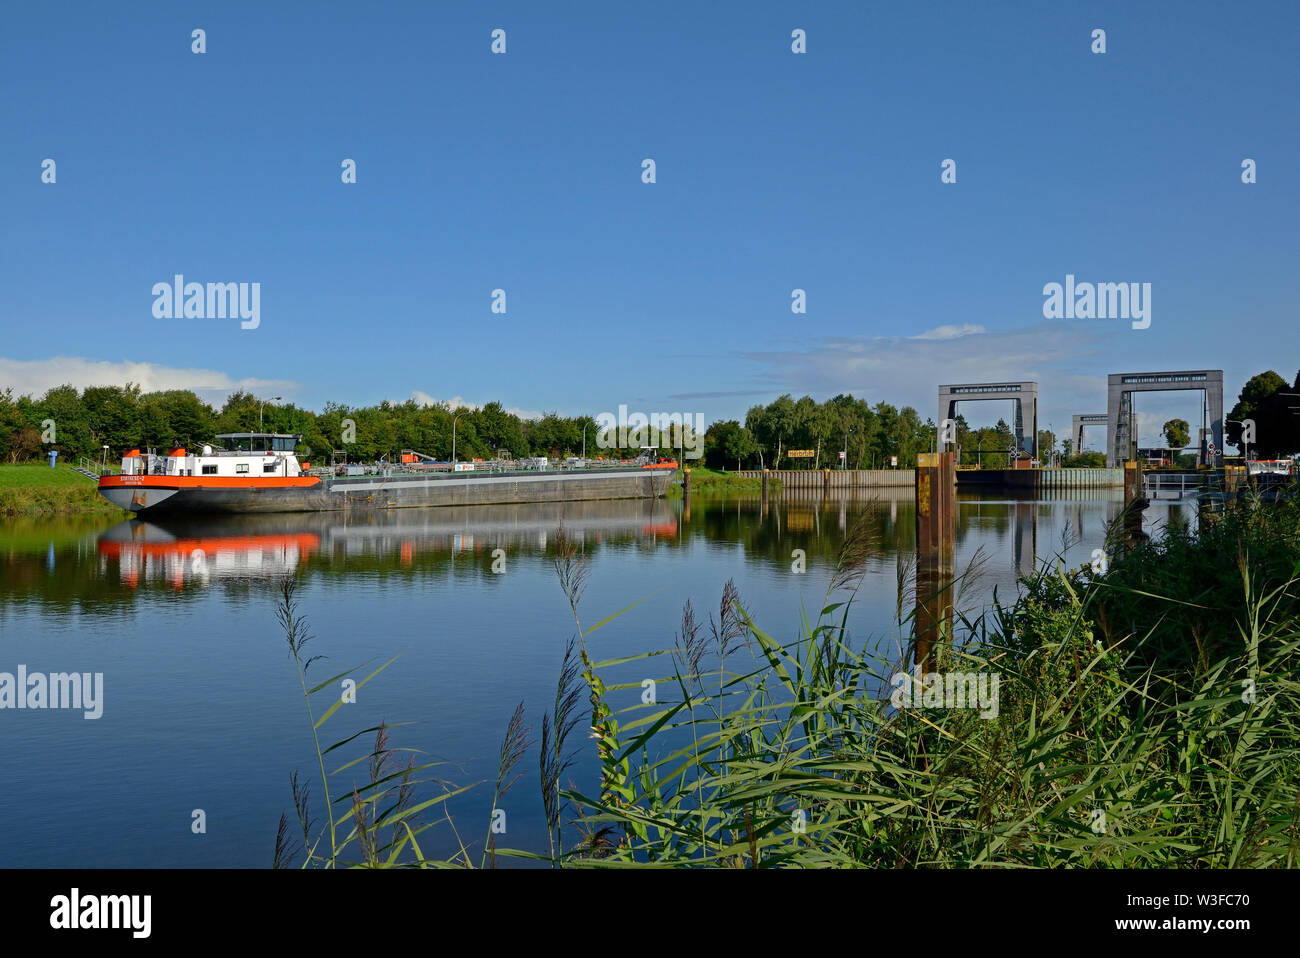 papenburg, niedersachsen/germany - august 24, 2014: the most northerly locks at the end of  dortmund ems canal at km 213.5 near herbrum and a inland w - Stock Image